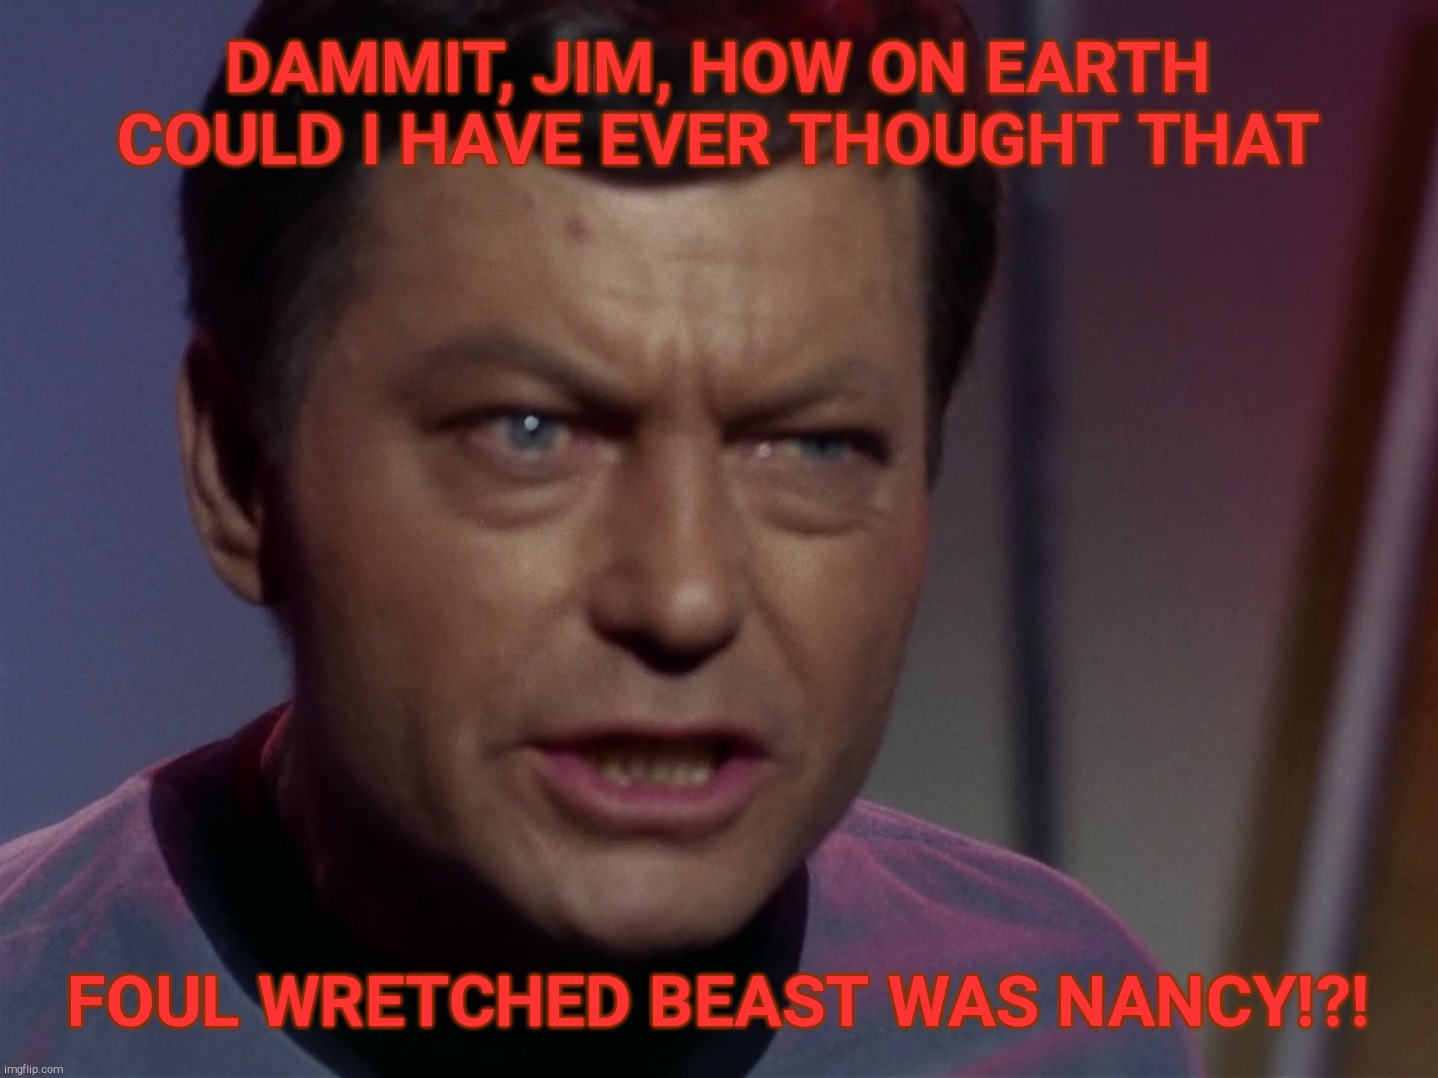 DAMMIT, JIM, HOW ON EARTH COULD I HAVE EVER THOUGHT THAT FOUL WRETCHED BEAST WAS NANCY!?! | made w/ Imgflip meme maker